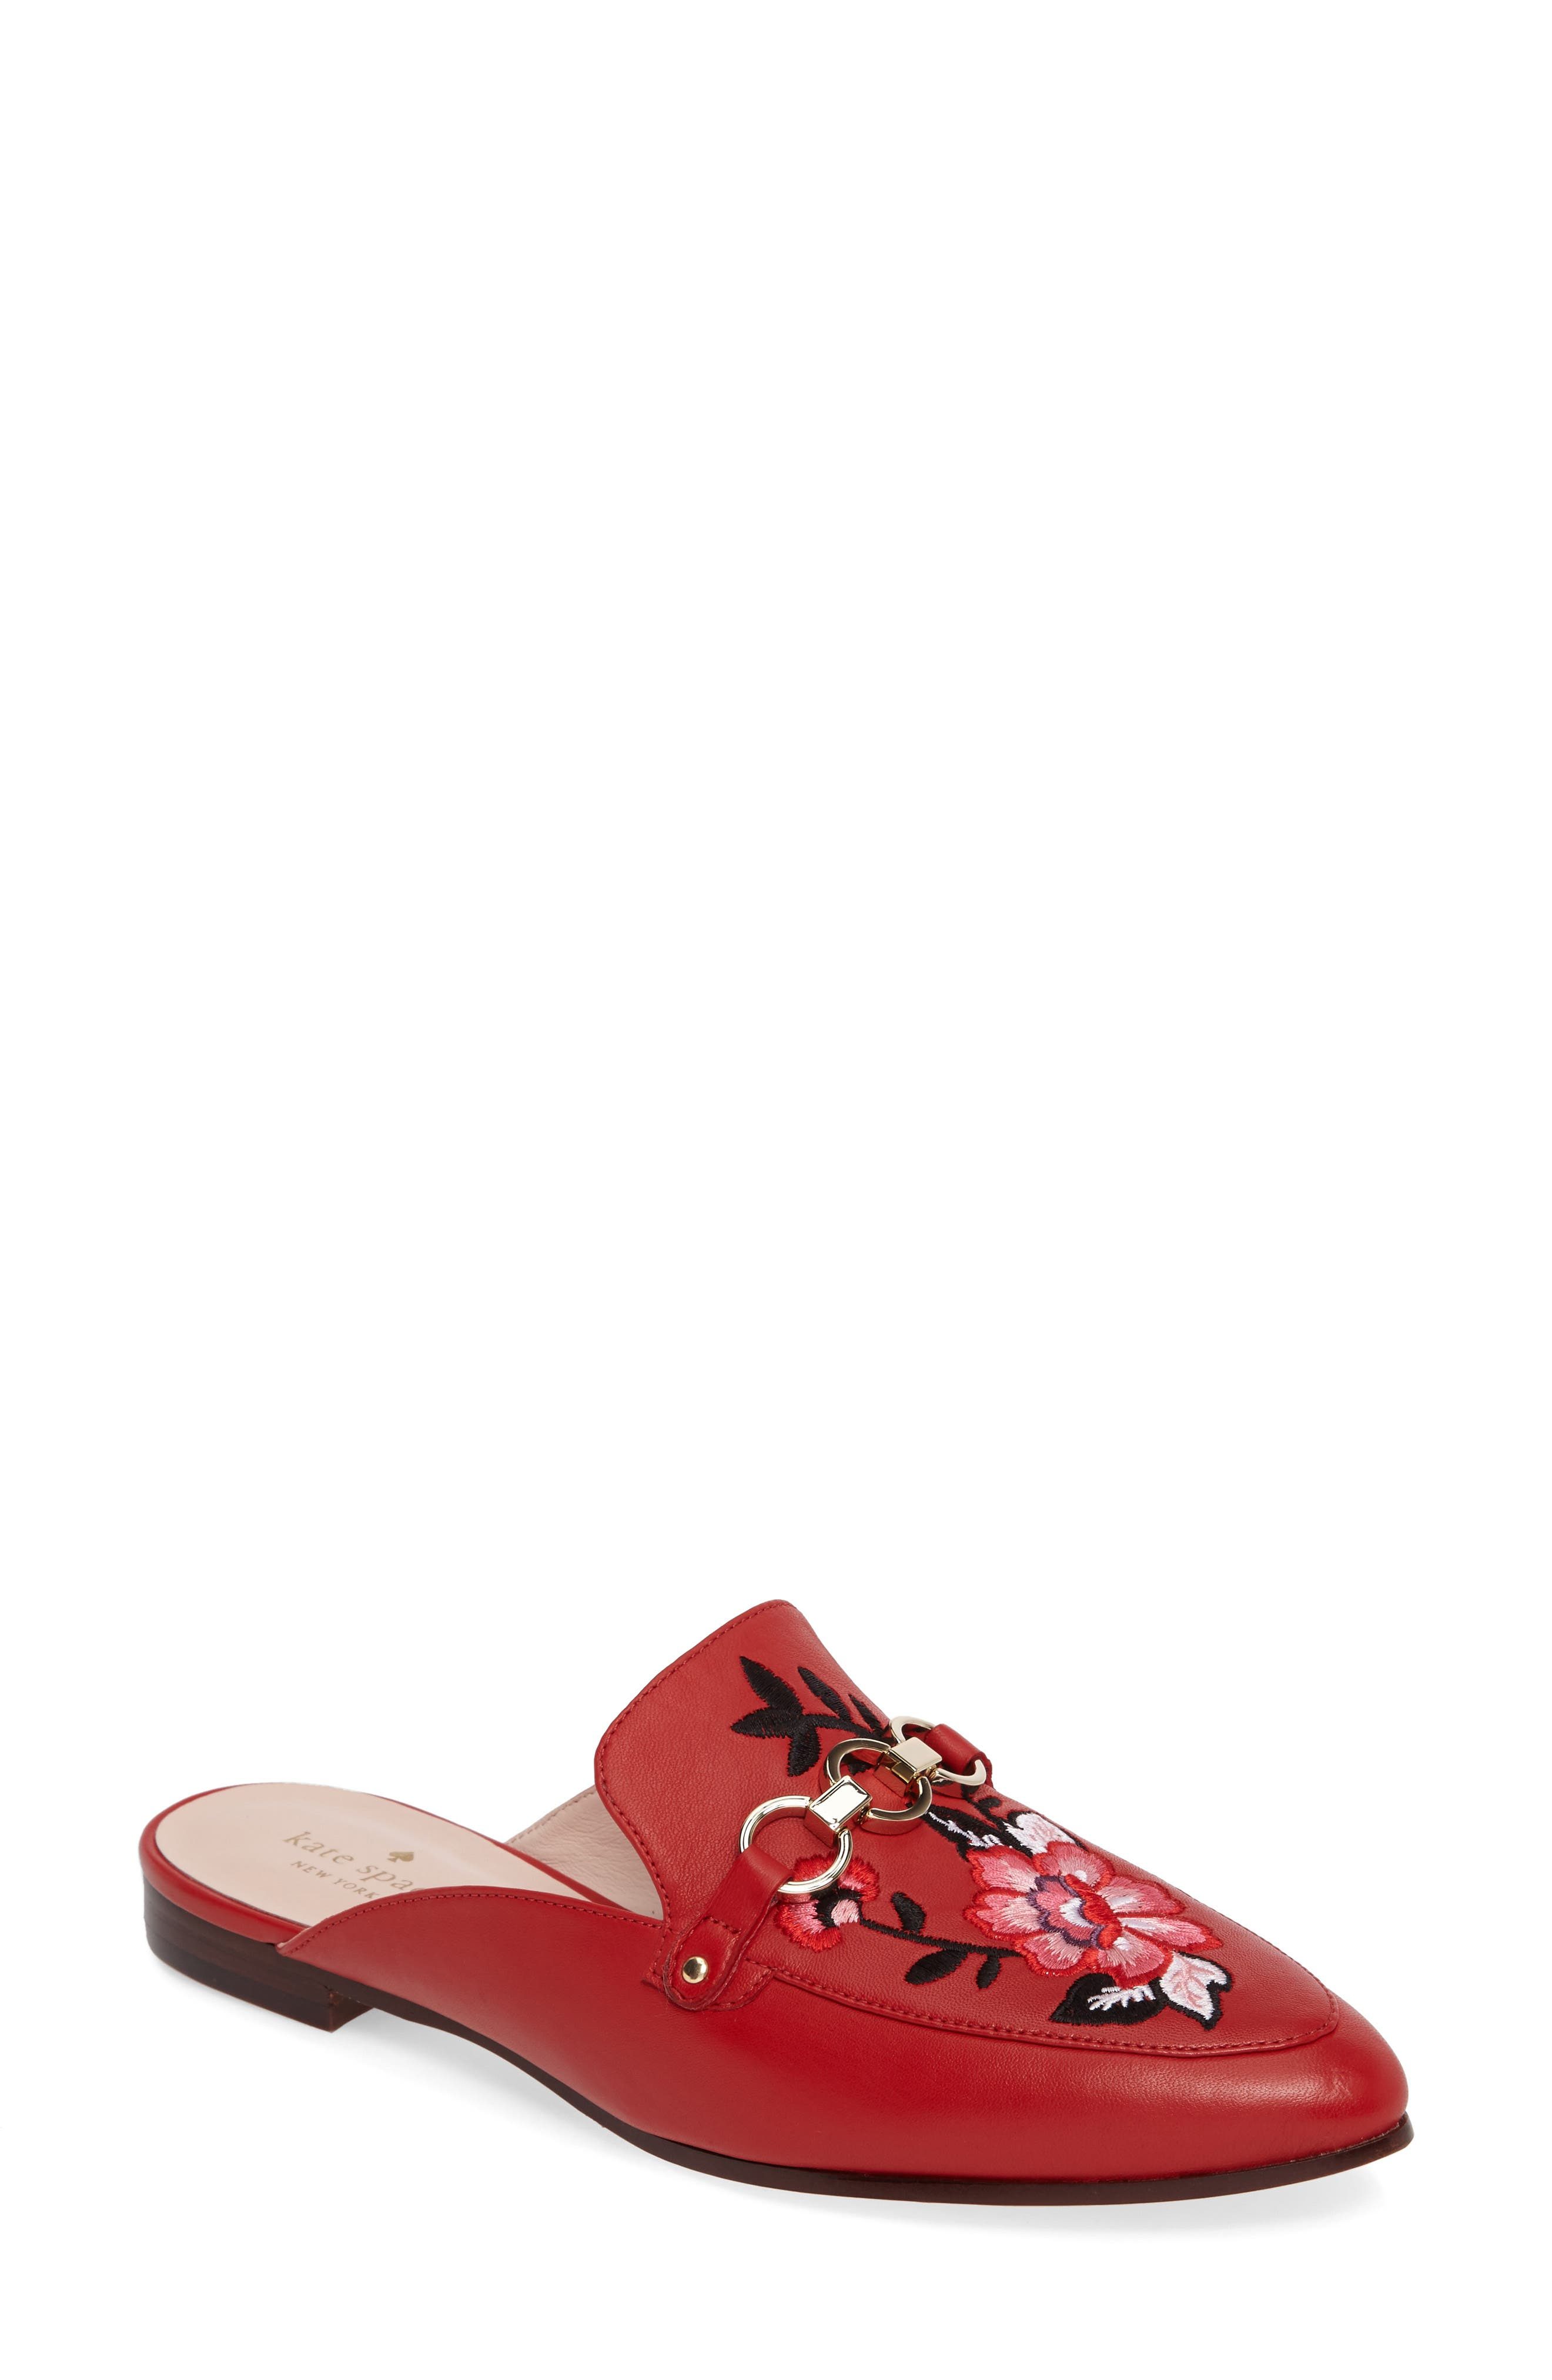 canyon embroidered loafer mule,                             Main thumbnail 1, color,                             Maraschino Red Nappa